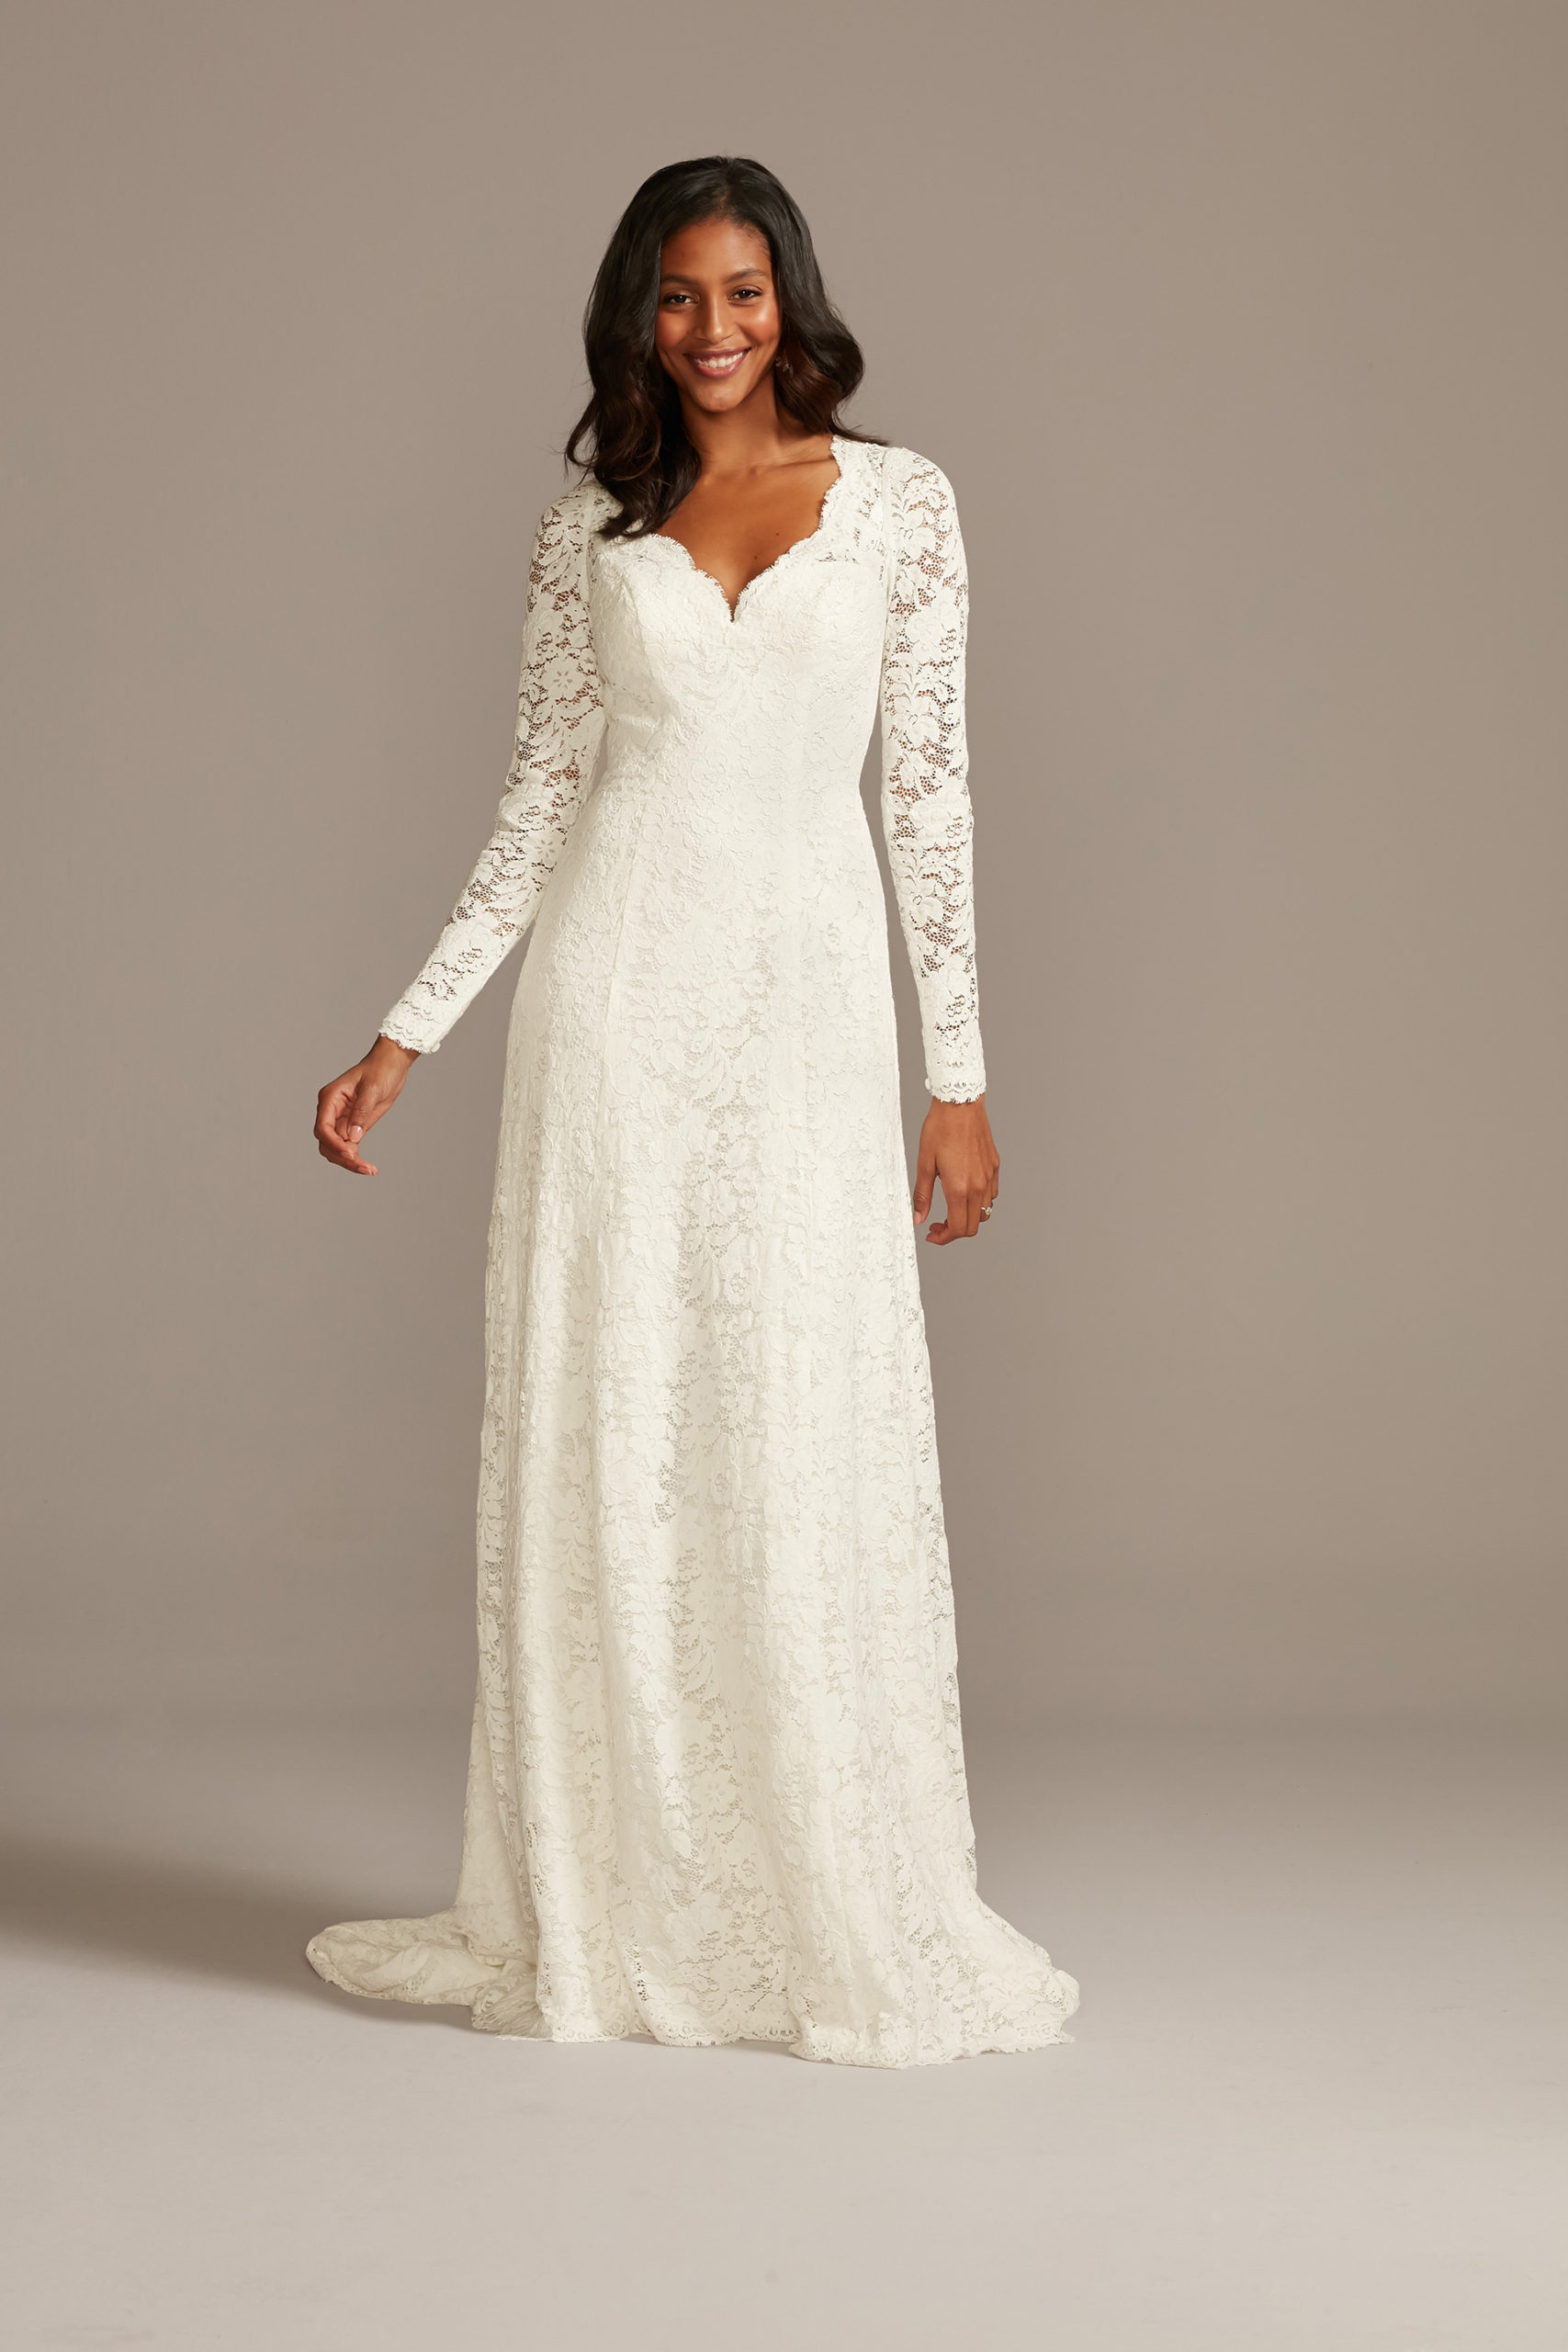 Bride wearing a wedding dress with long sleeves